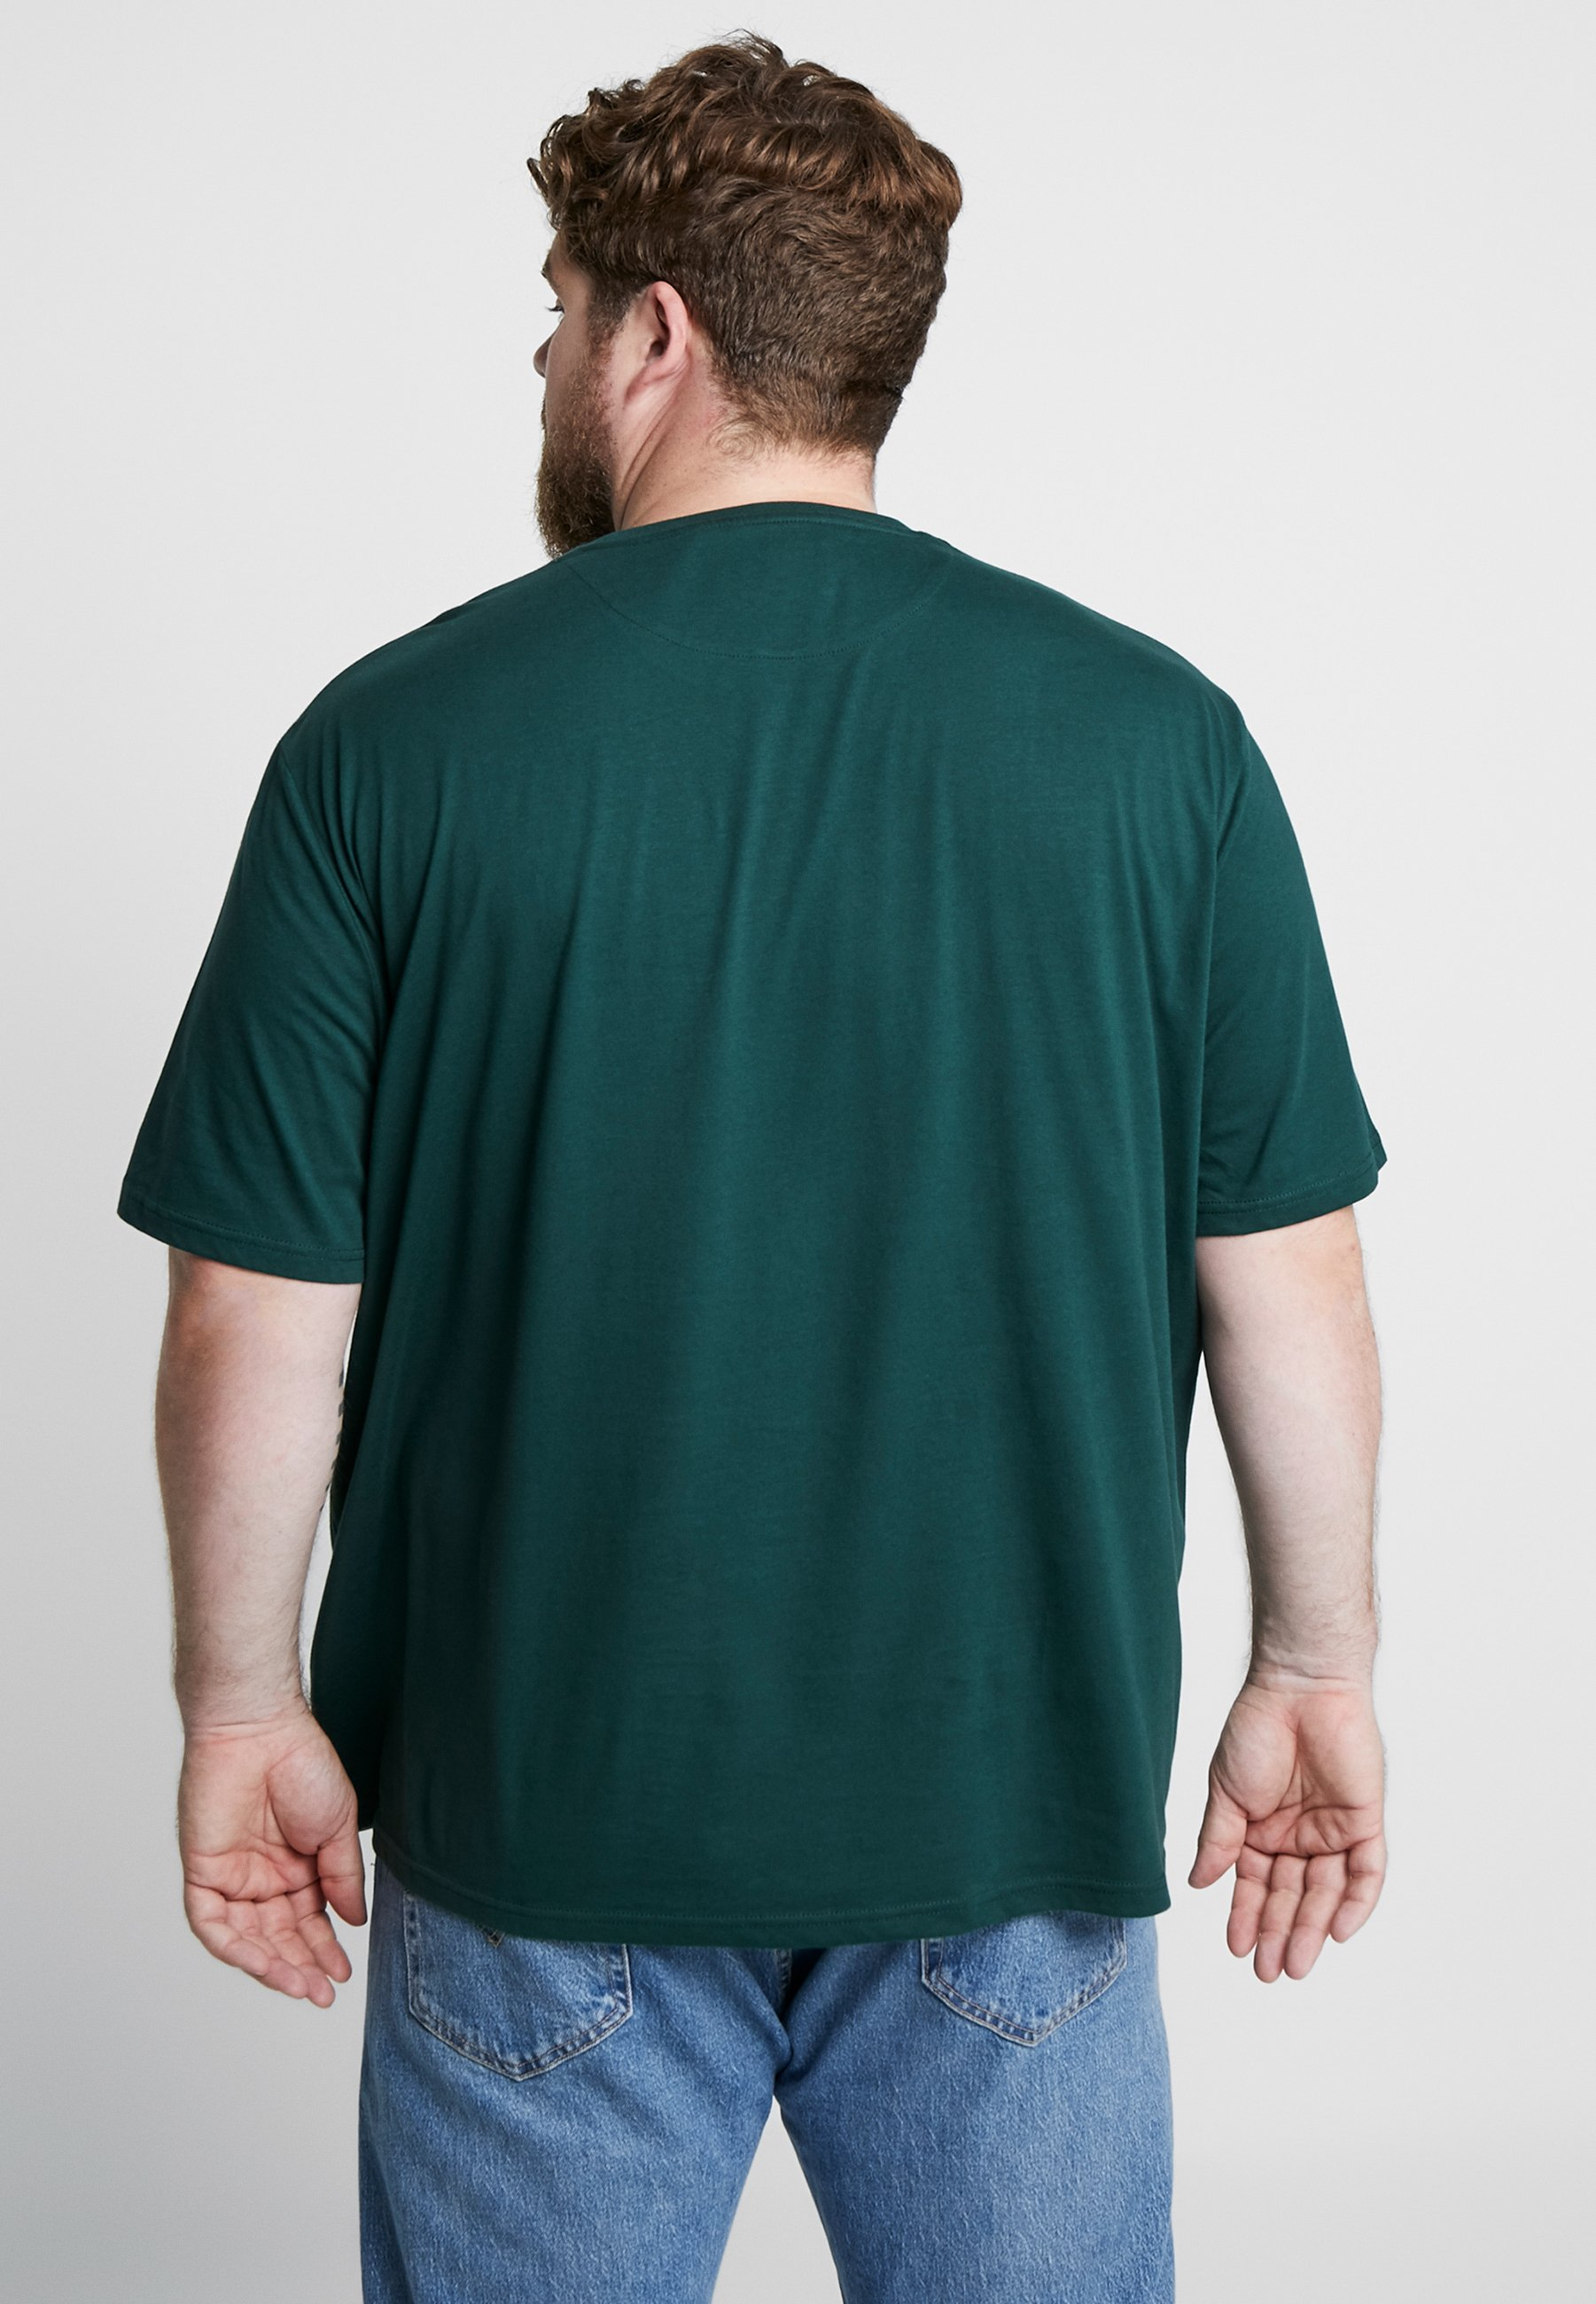 Scott shirt Jade NeckT Basique Green Crew Lyleamp; nPym0OvwN8